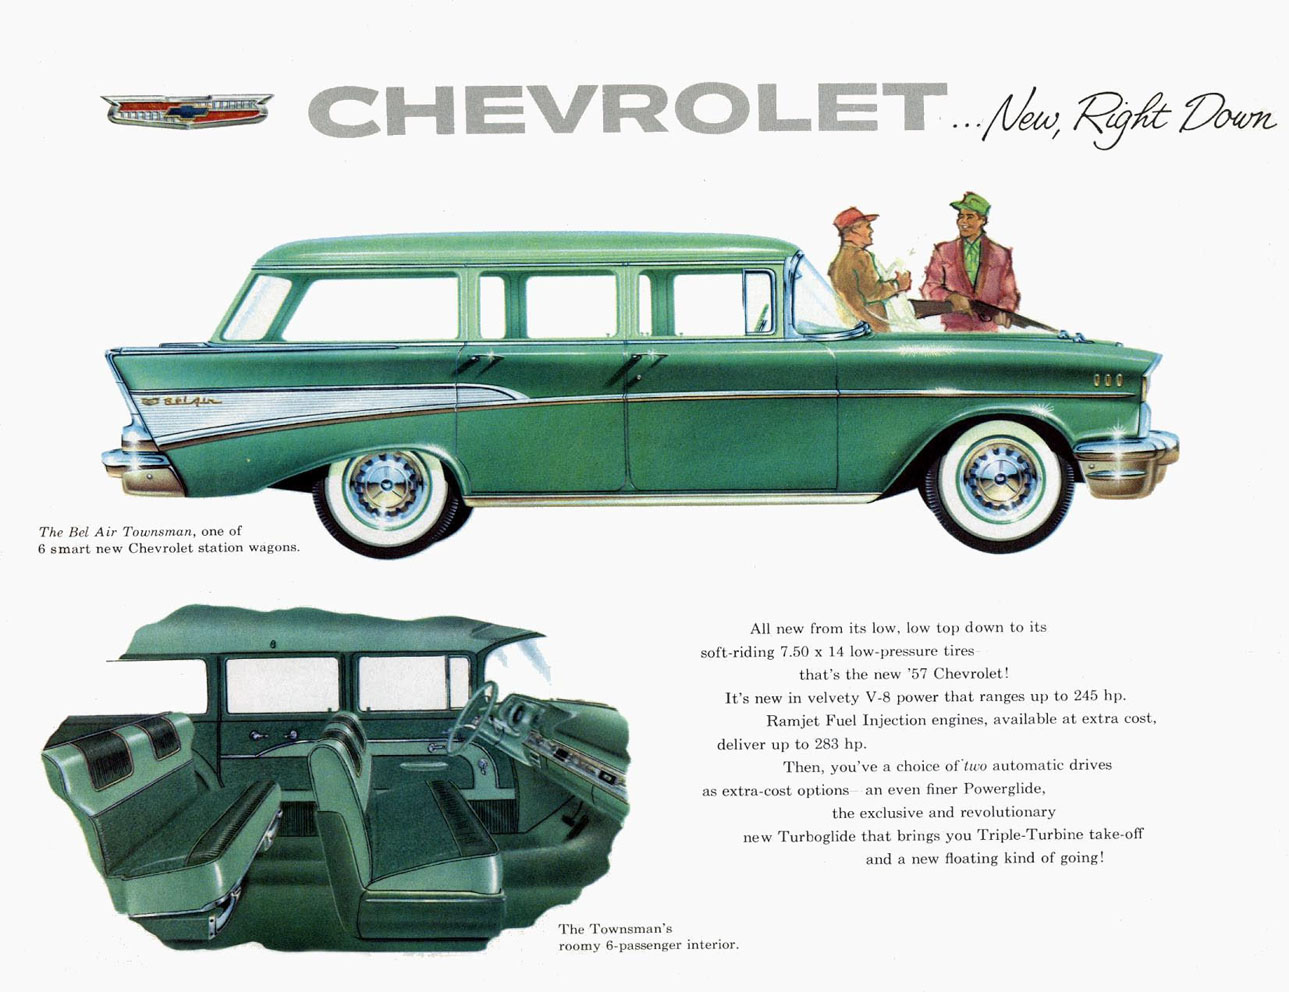 1956 bel air for sale submited images - 1957 Chevrolet Bel Air Townsman Station Wagon God I Love Cars Pinterest 1957 Chevrolet Chevrolet Bel Air And Station Wagon